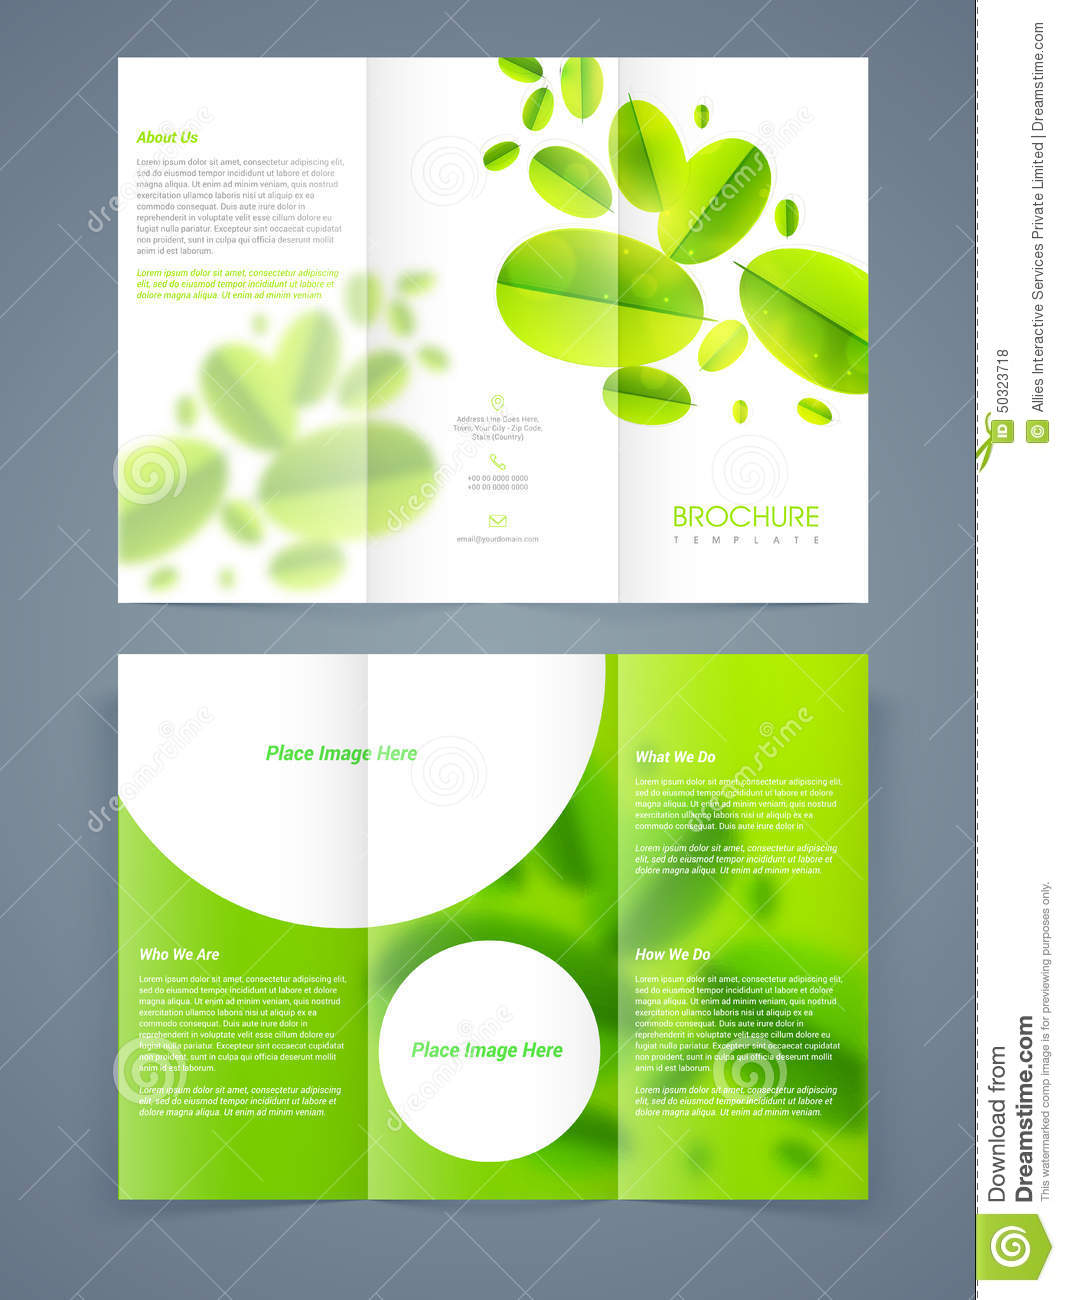 brochure templates pages - save ecology brochure template or flyer design stock